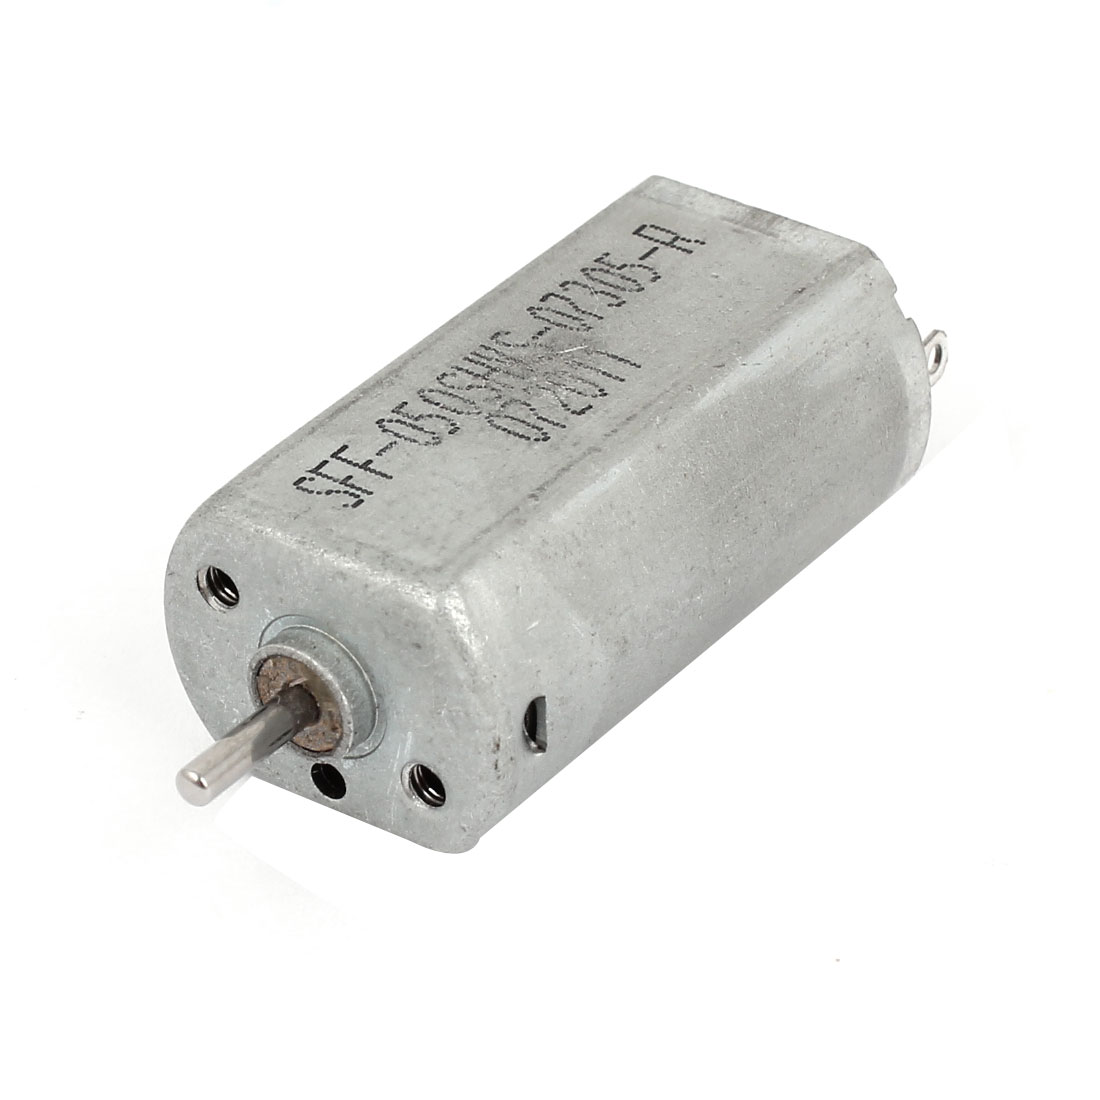 DC 3-12V Output 7400R/Min High Speed Axis Electric Mini Micro Motor